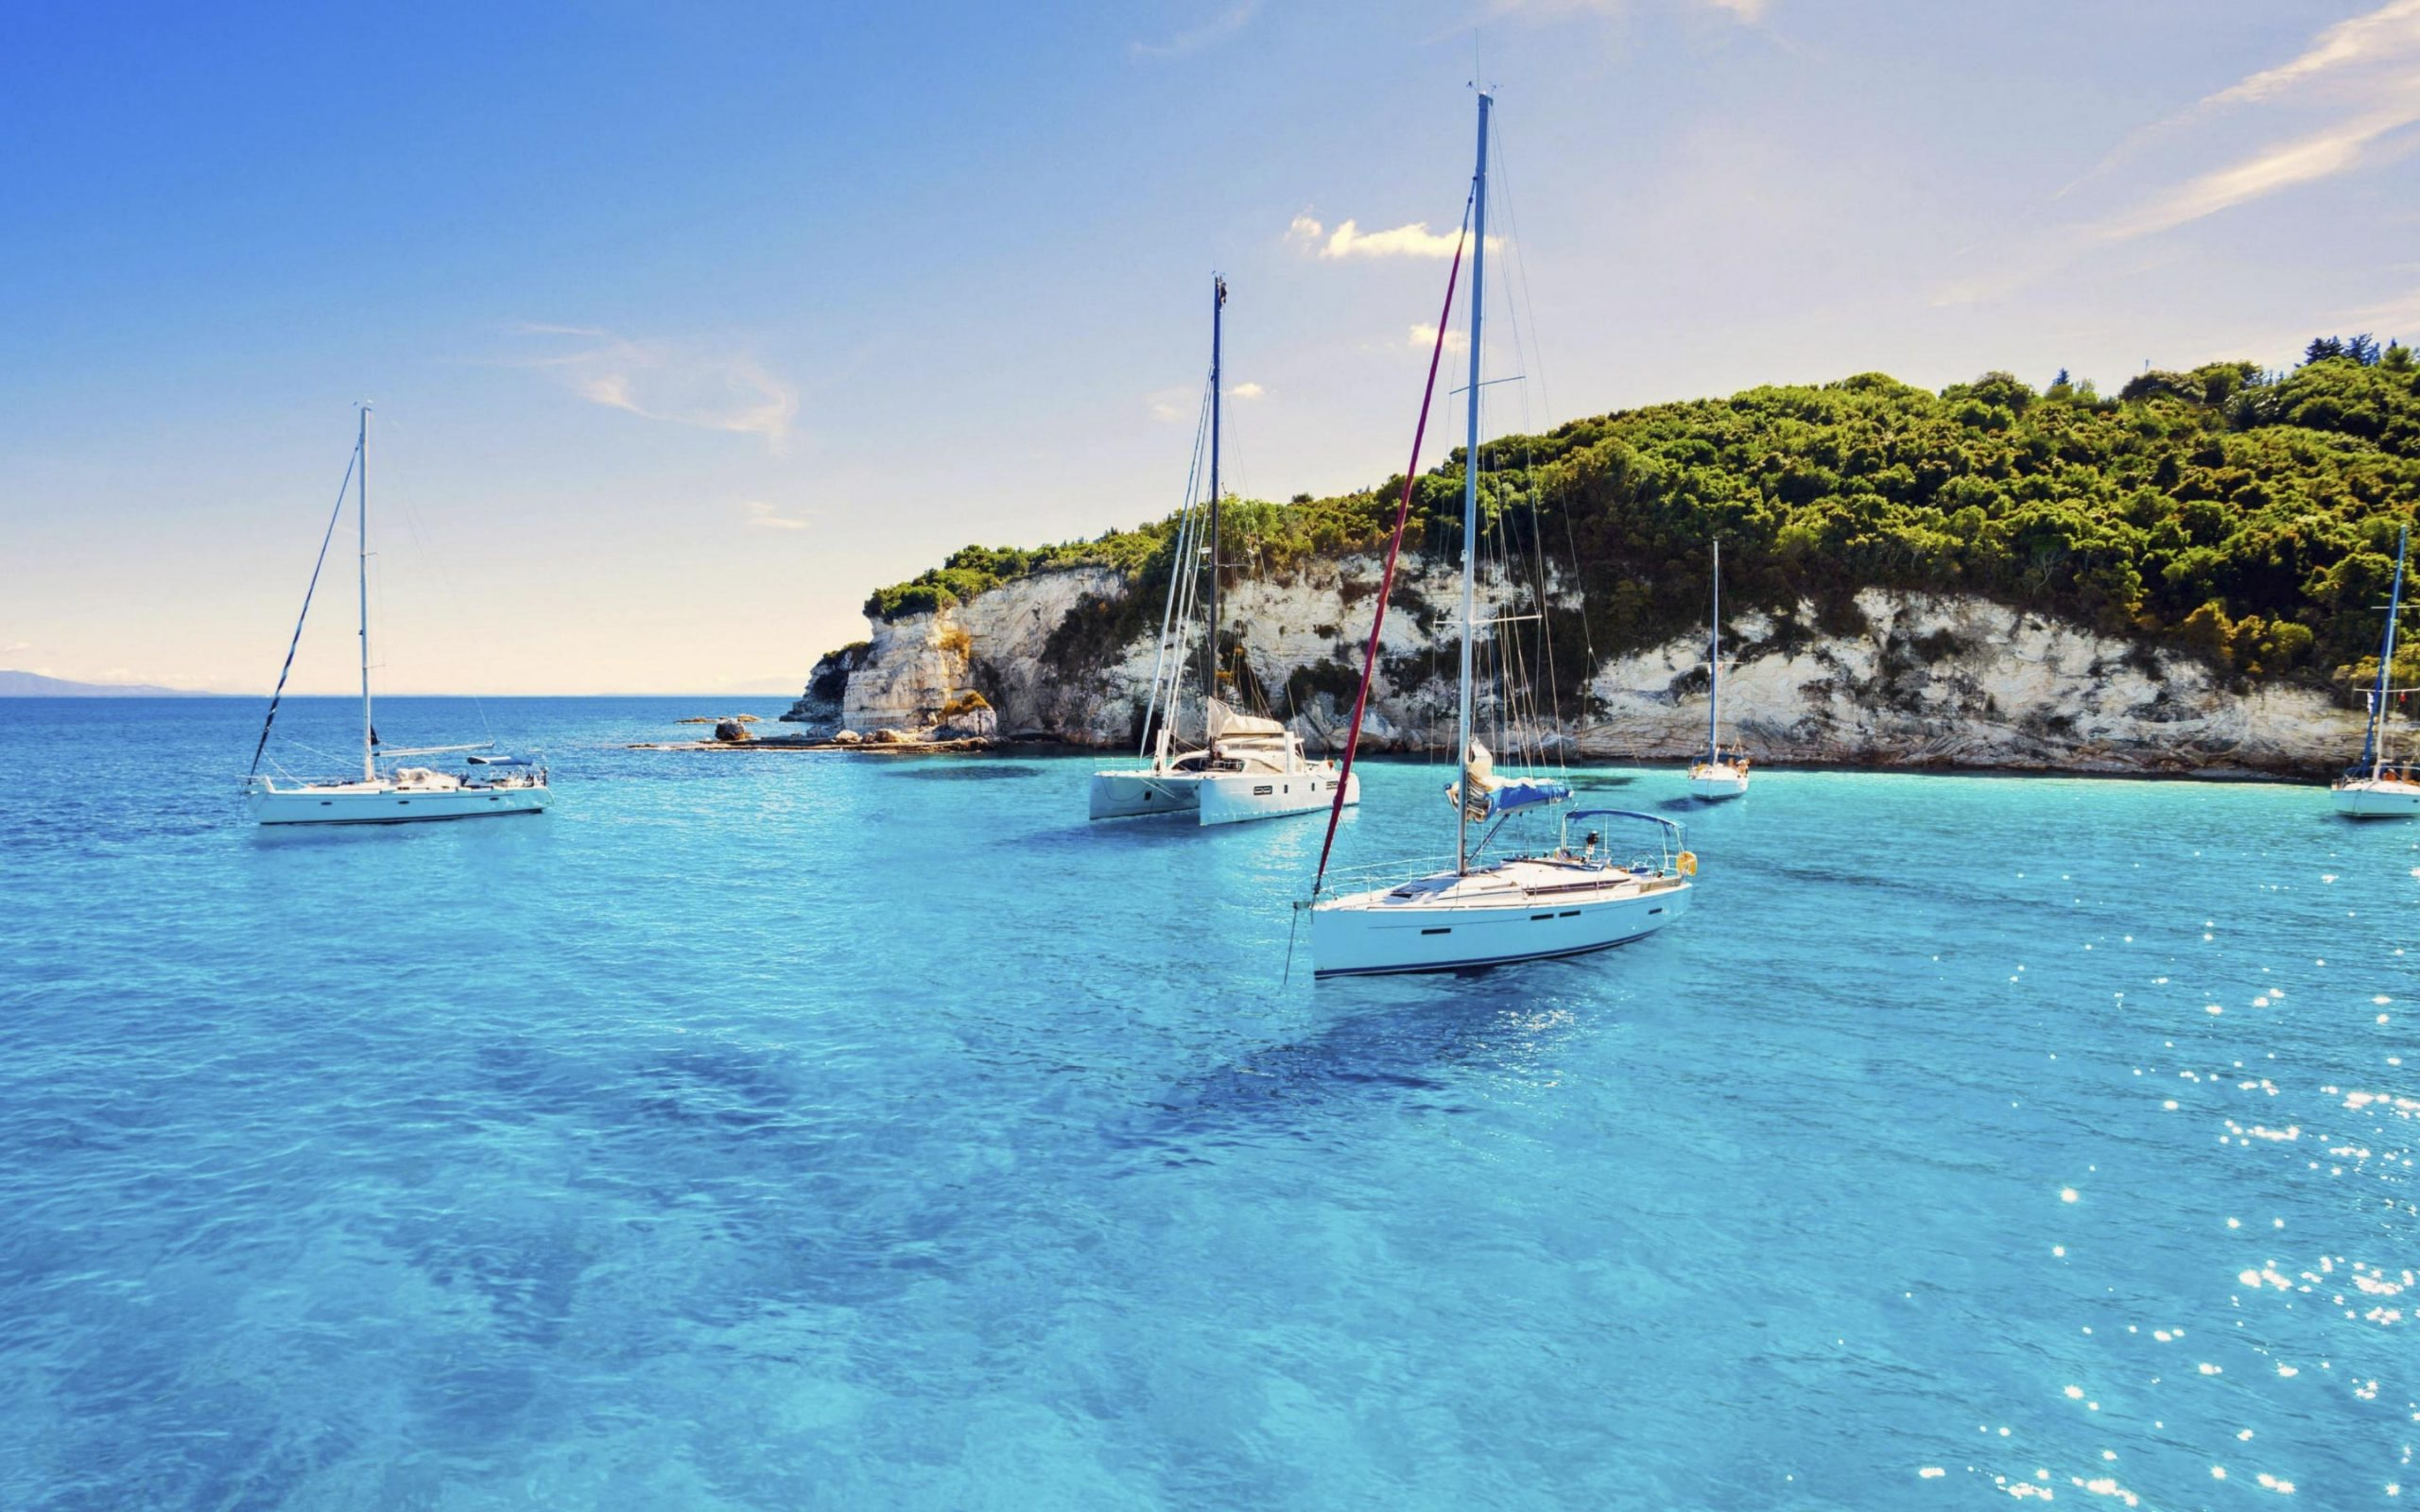 paxos-island-near-corfu-greece-low-2